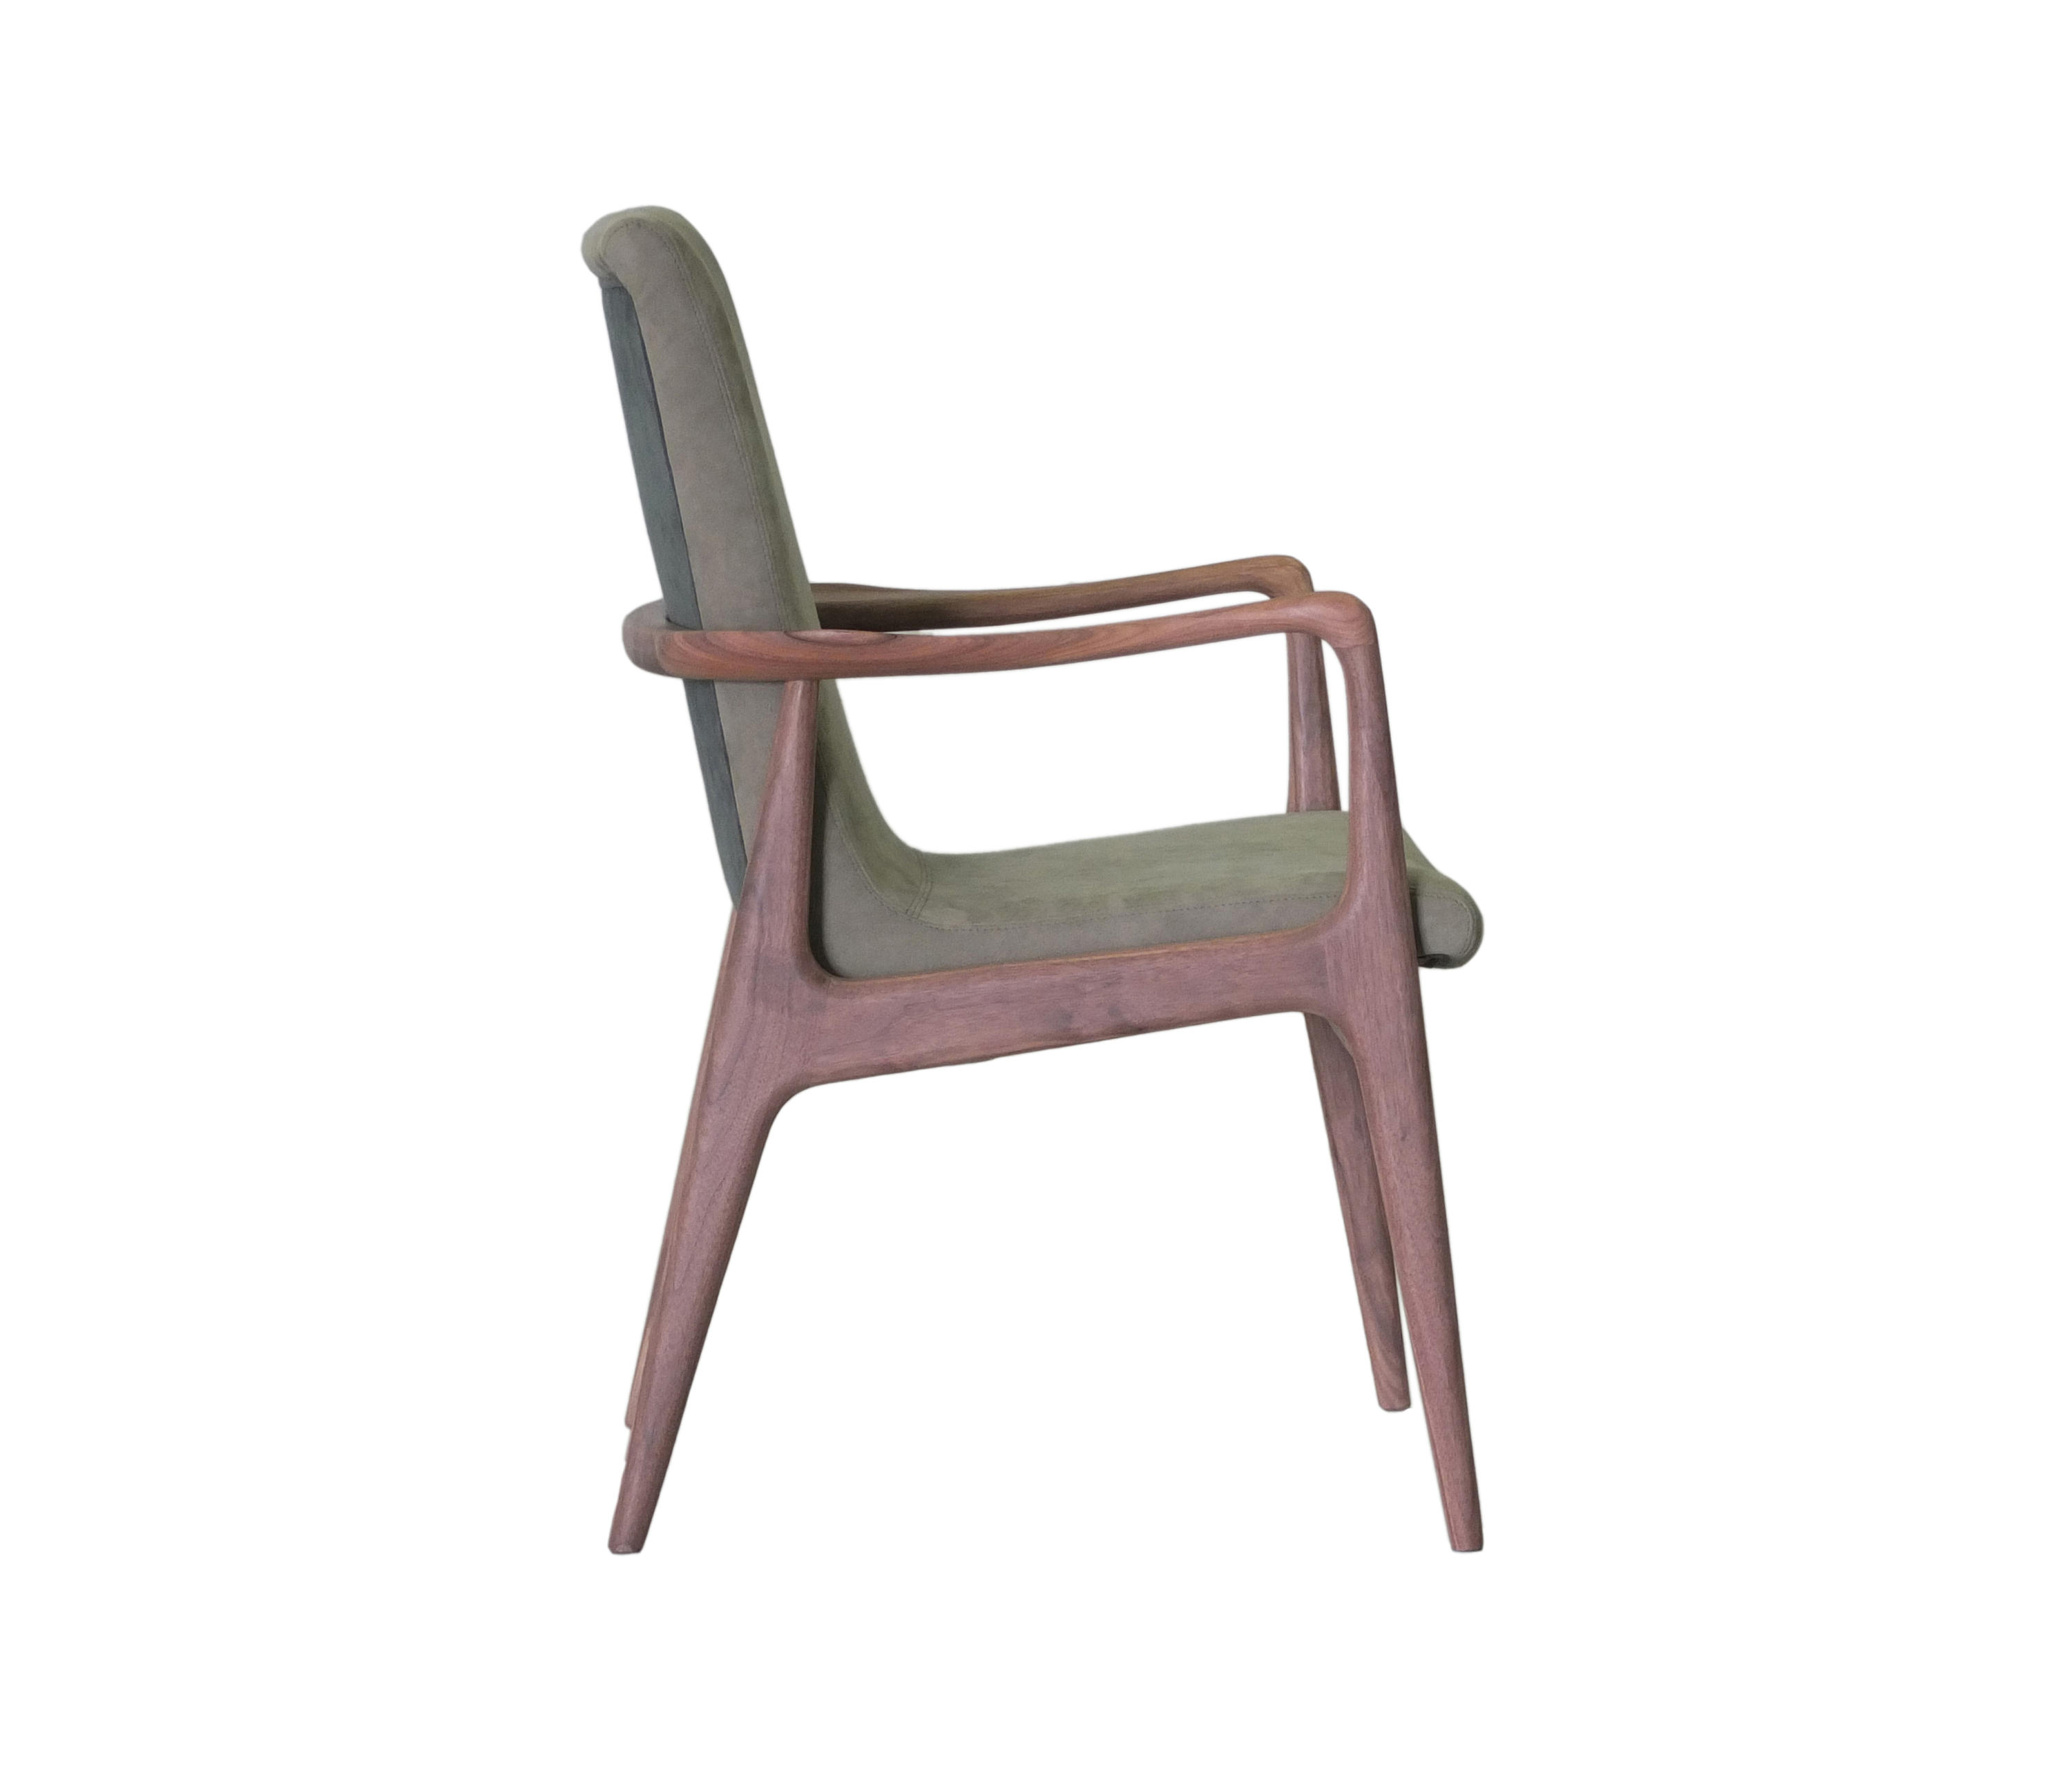 Inge Armchair Chairs From Morelato Architonic # Muebles Sixties